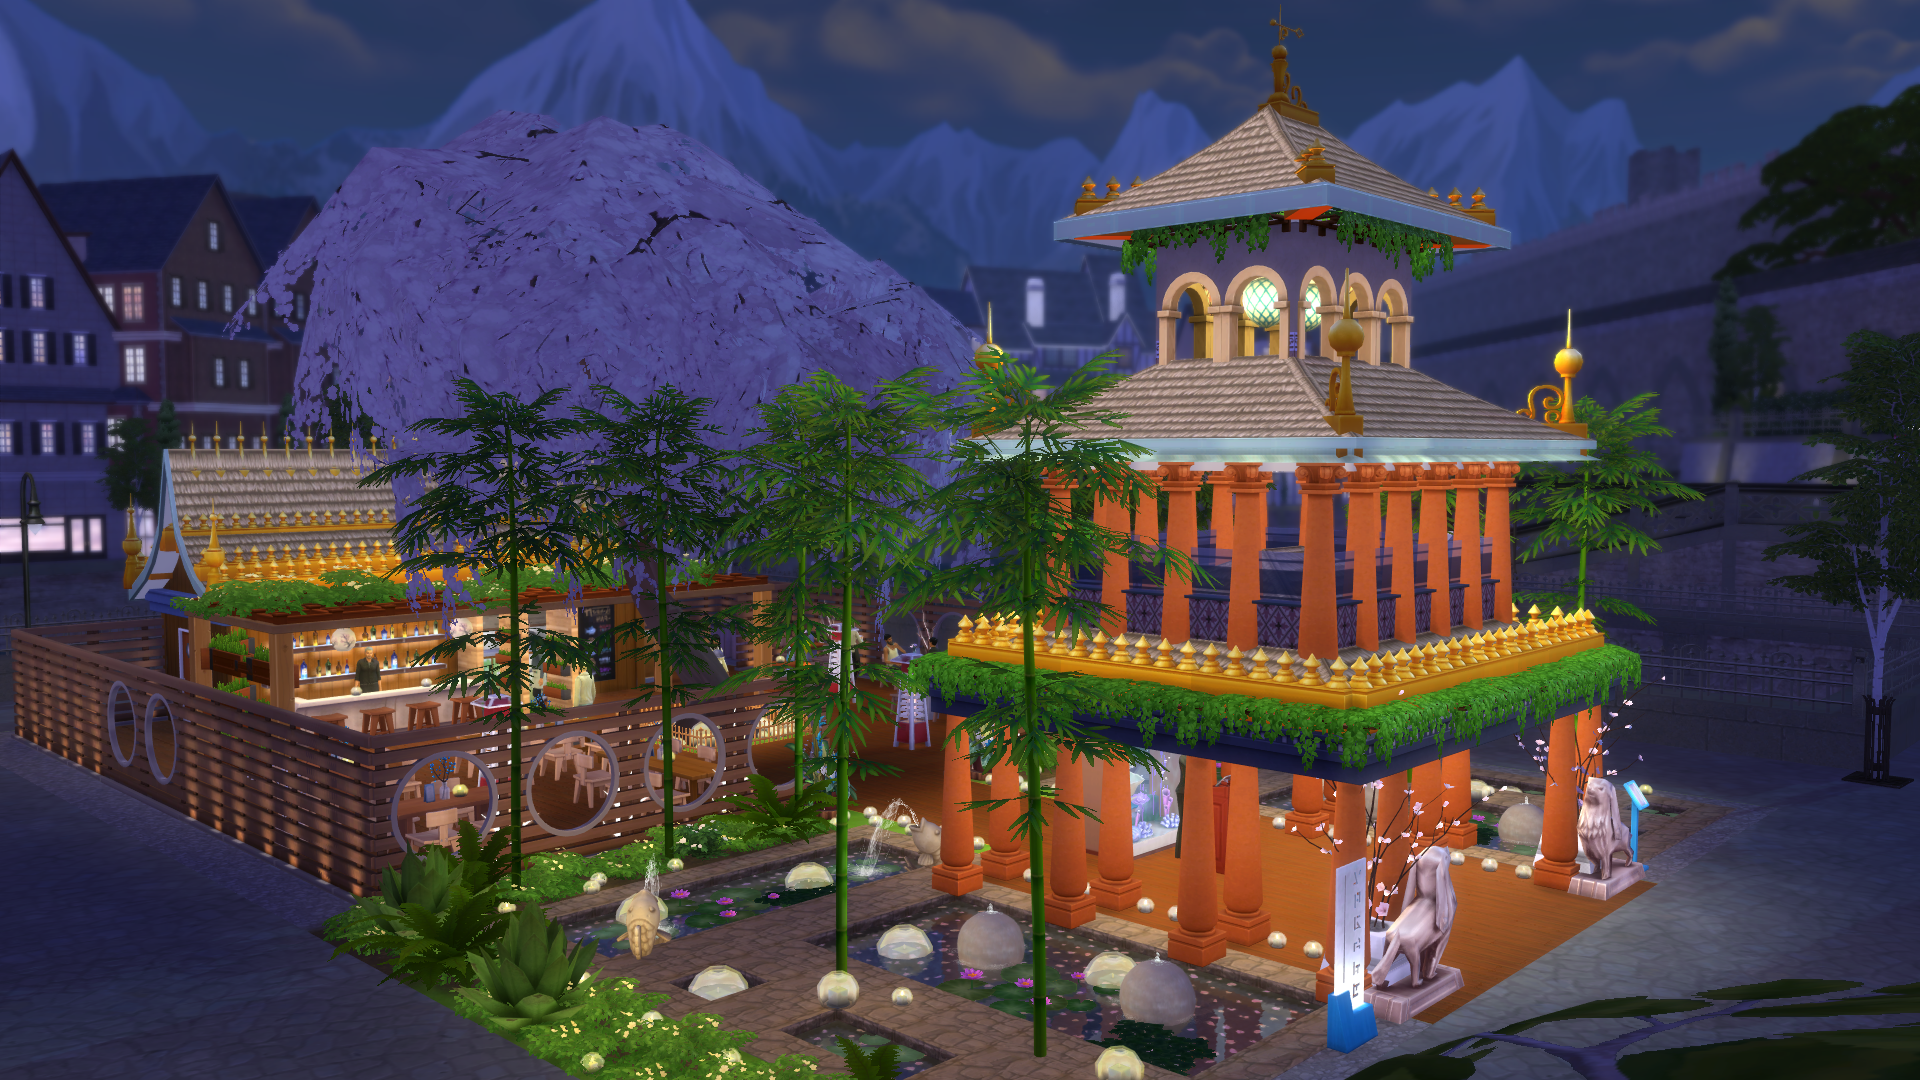 The sims 4 dine out building ideas simsvip - Building a new home ideas ...